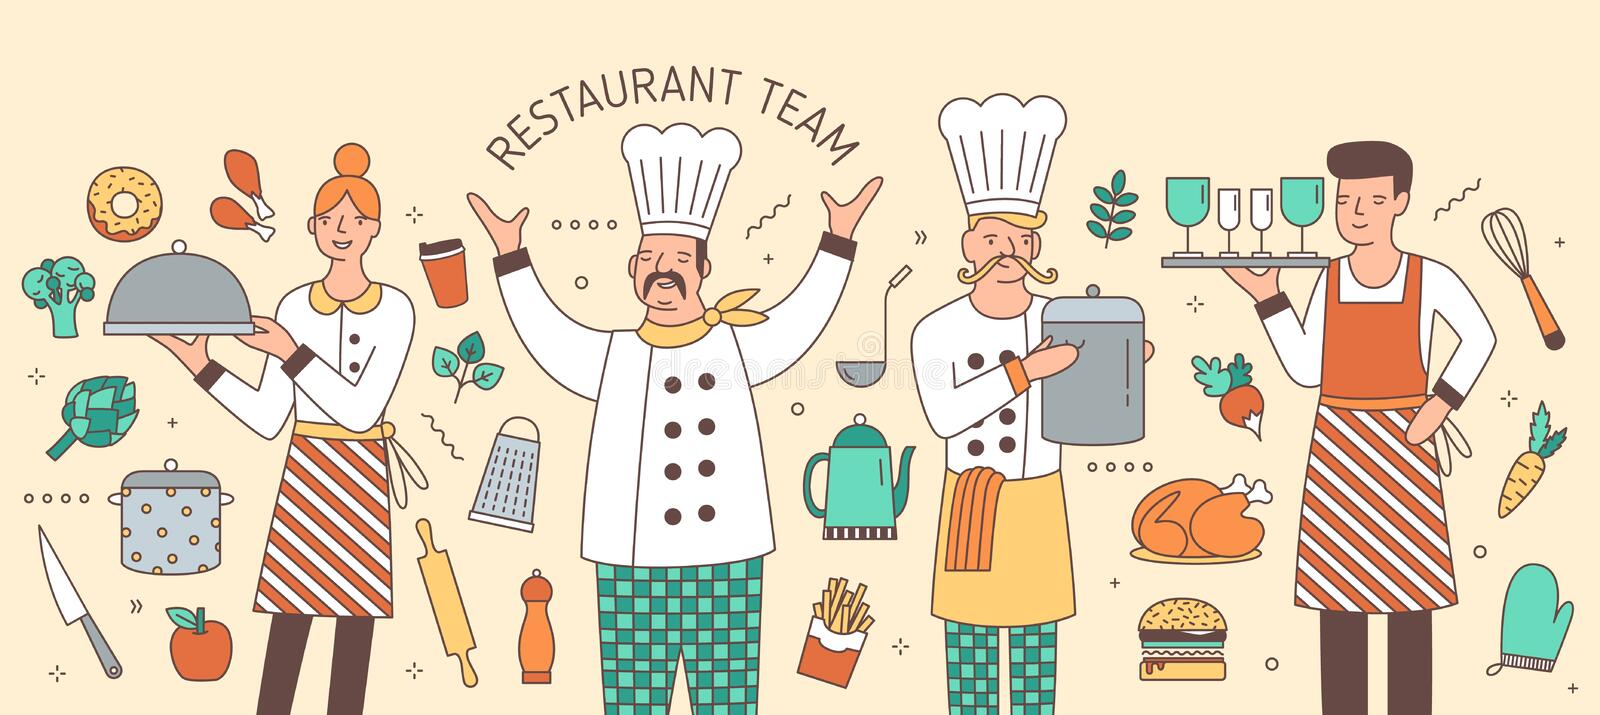 Colorful horizontal banner with chief, cook, waiter and waitress surrounded by food products and kitchen utensils vector illustration